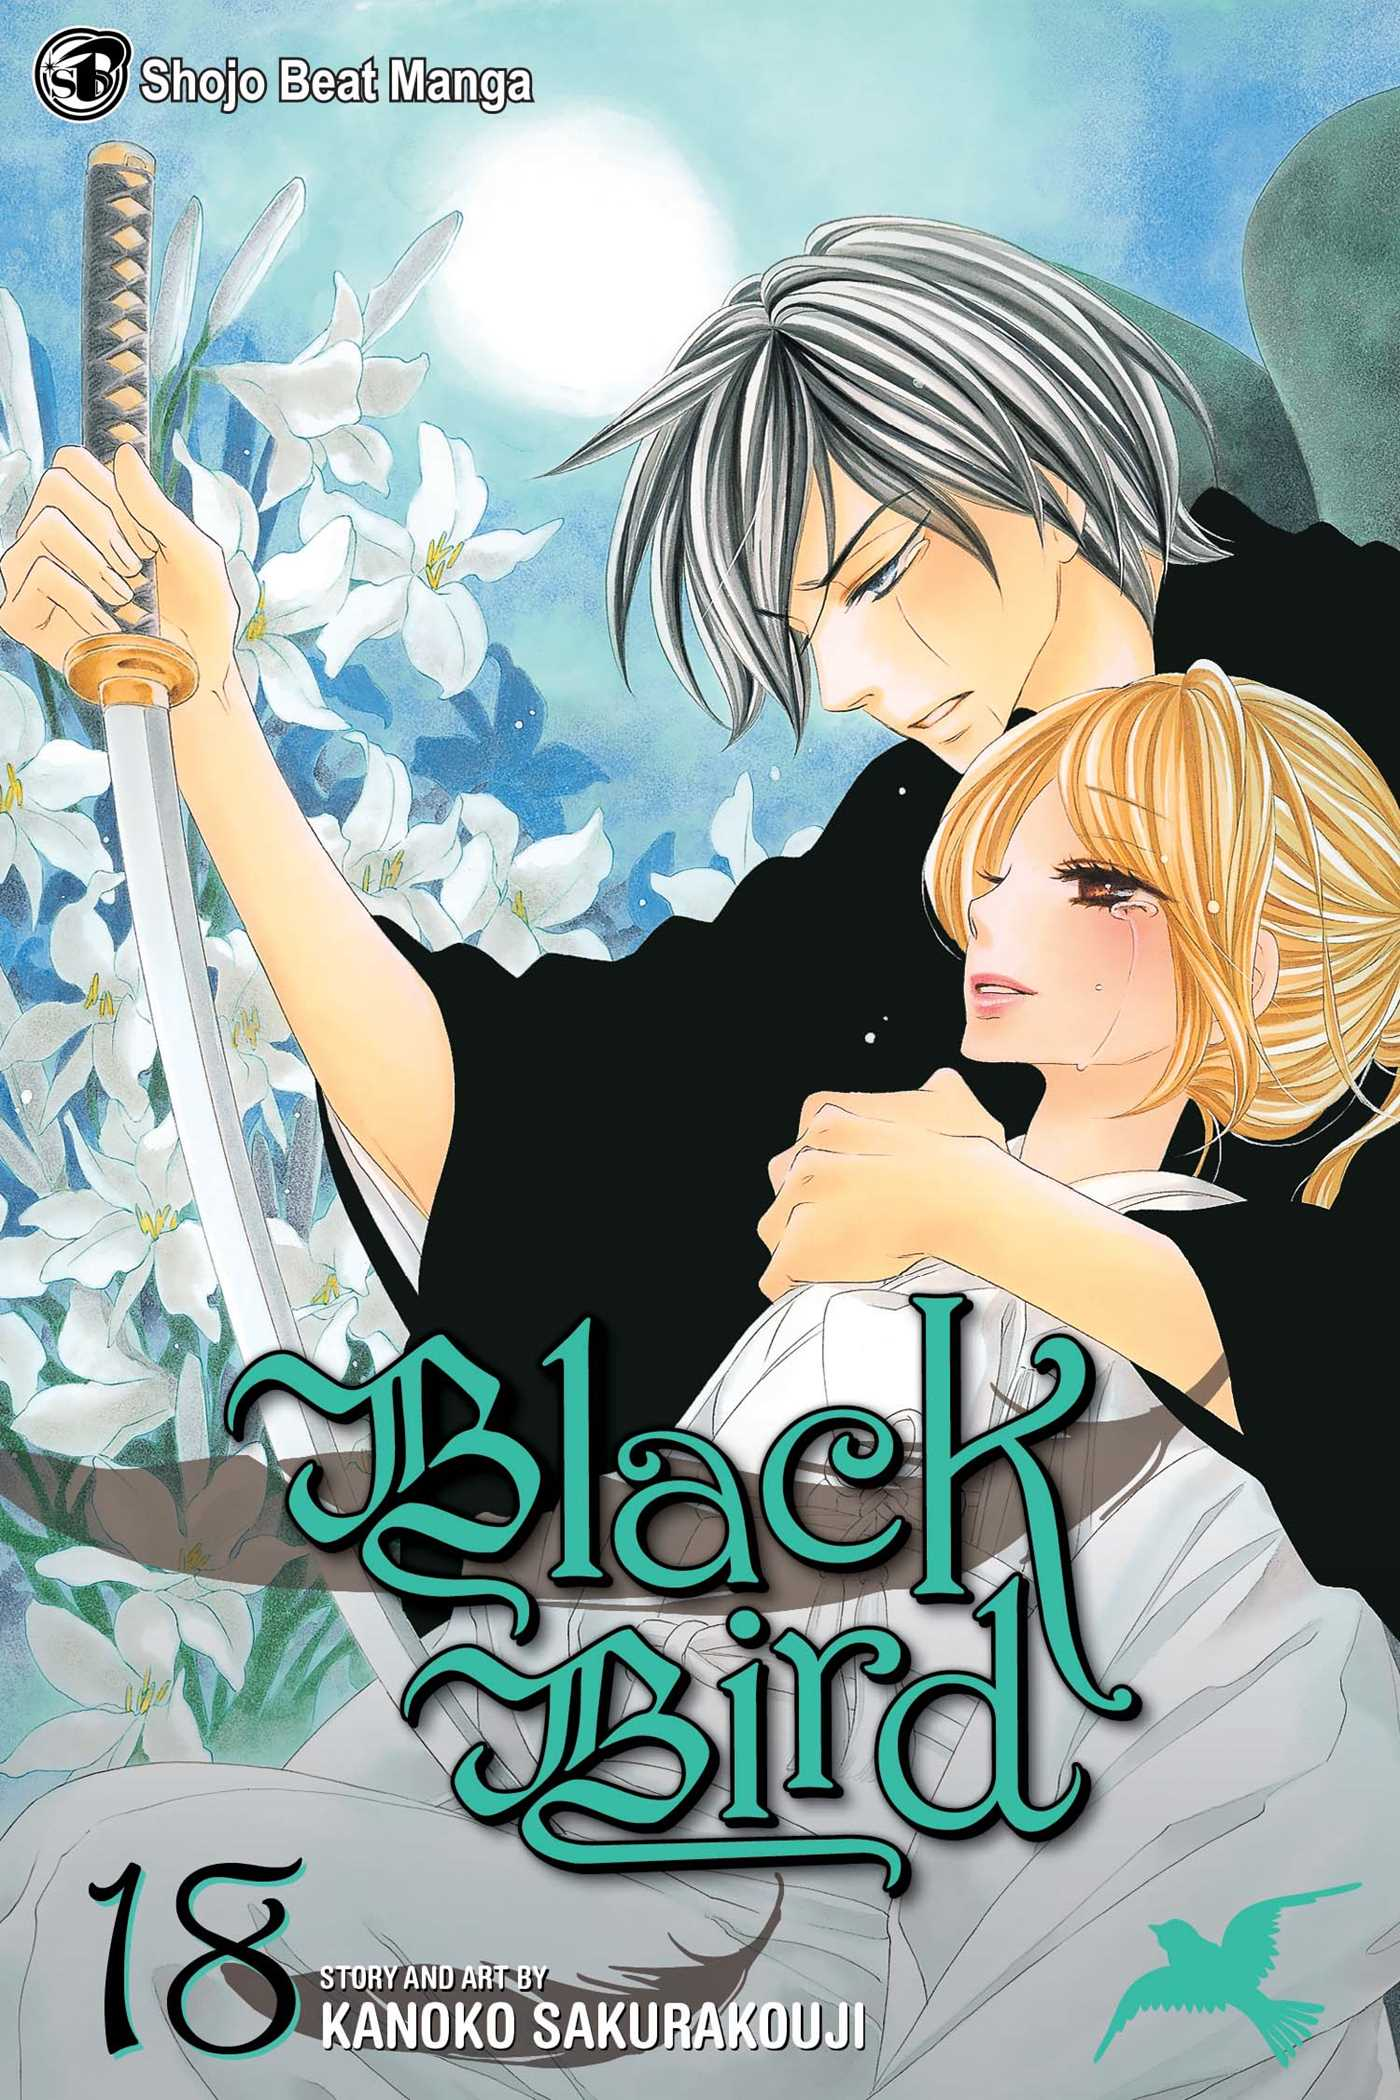 Black-bird-vol-18-9781421560090_hr